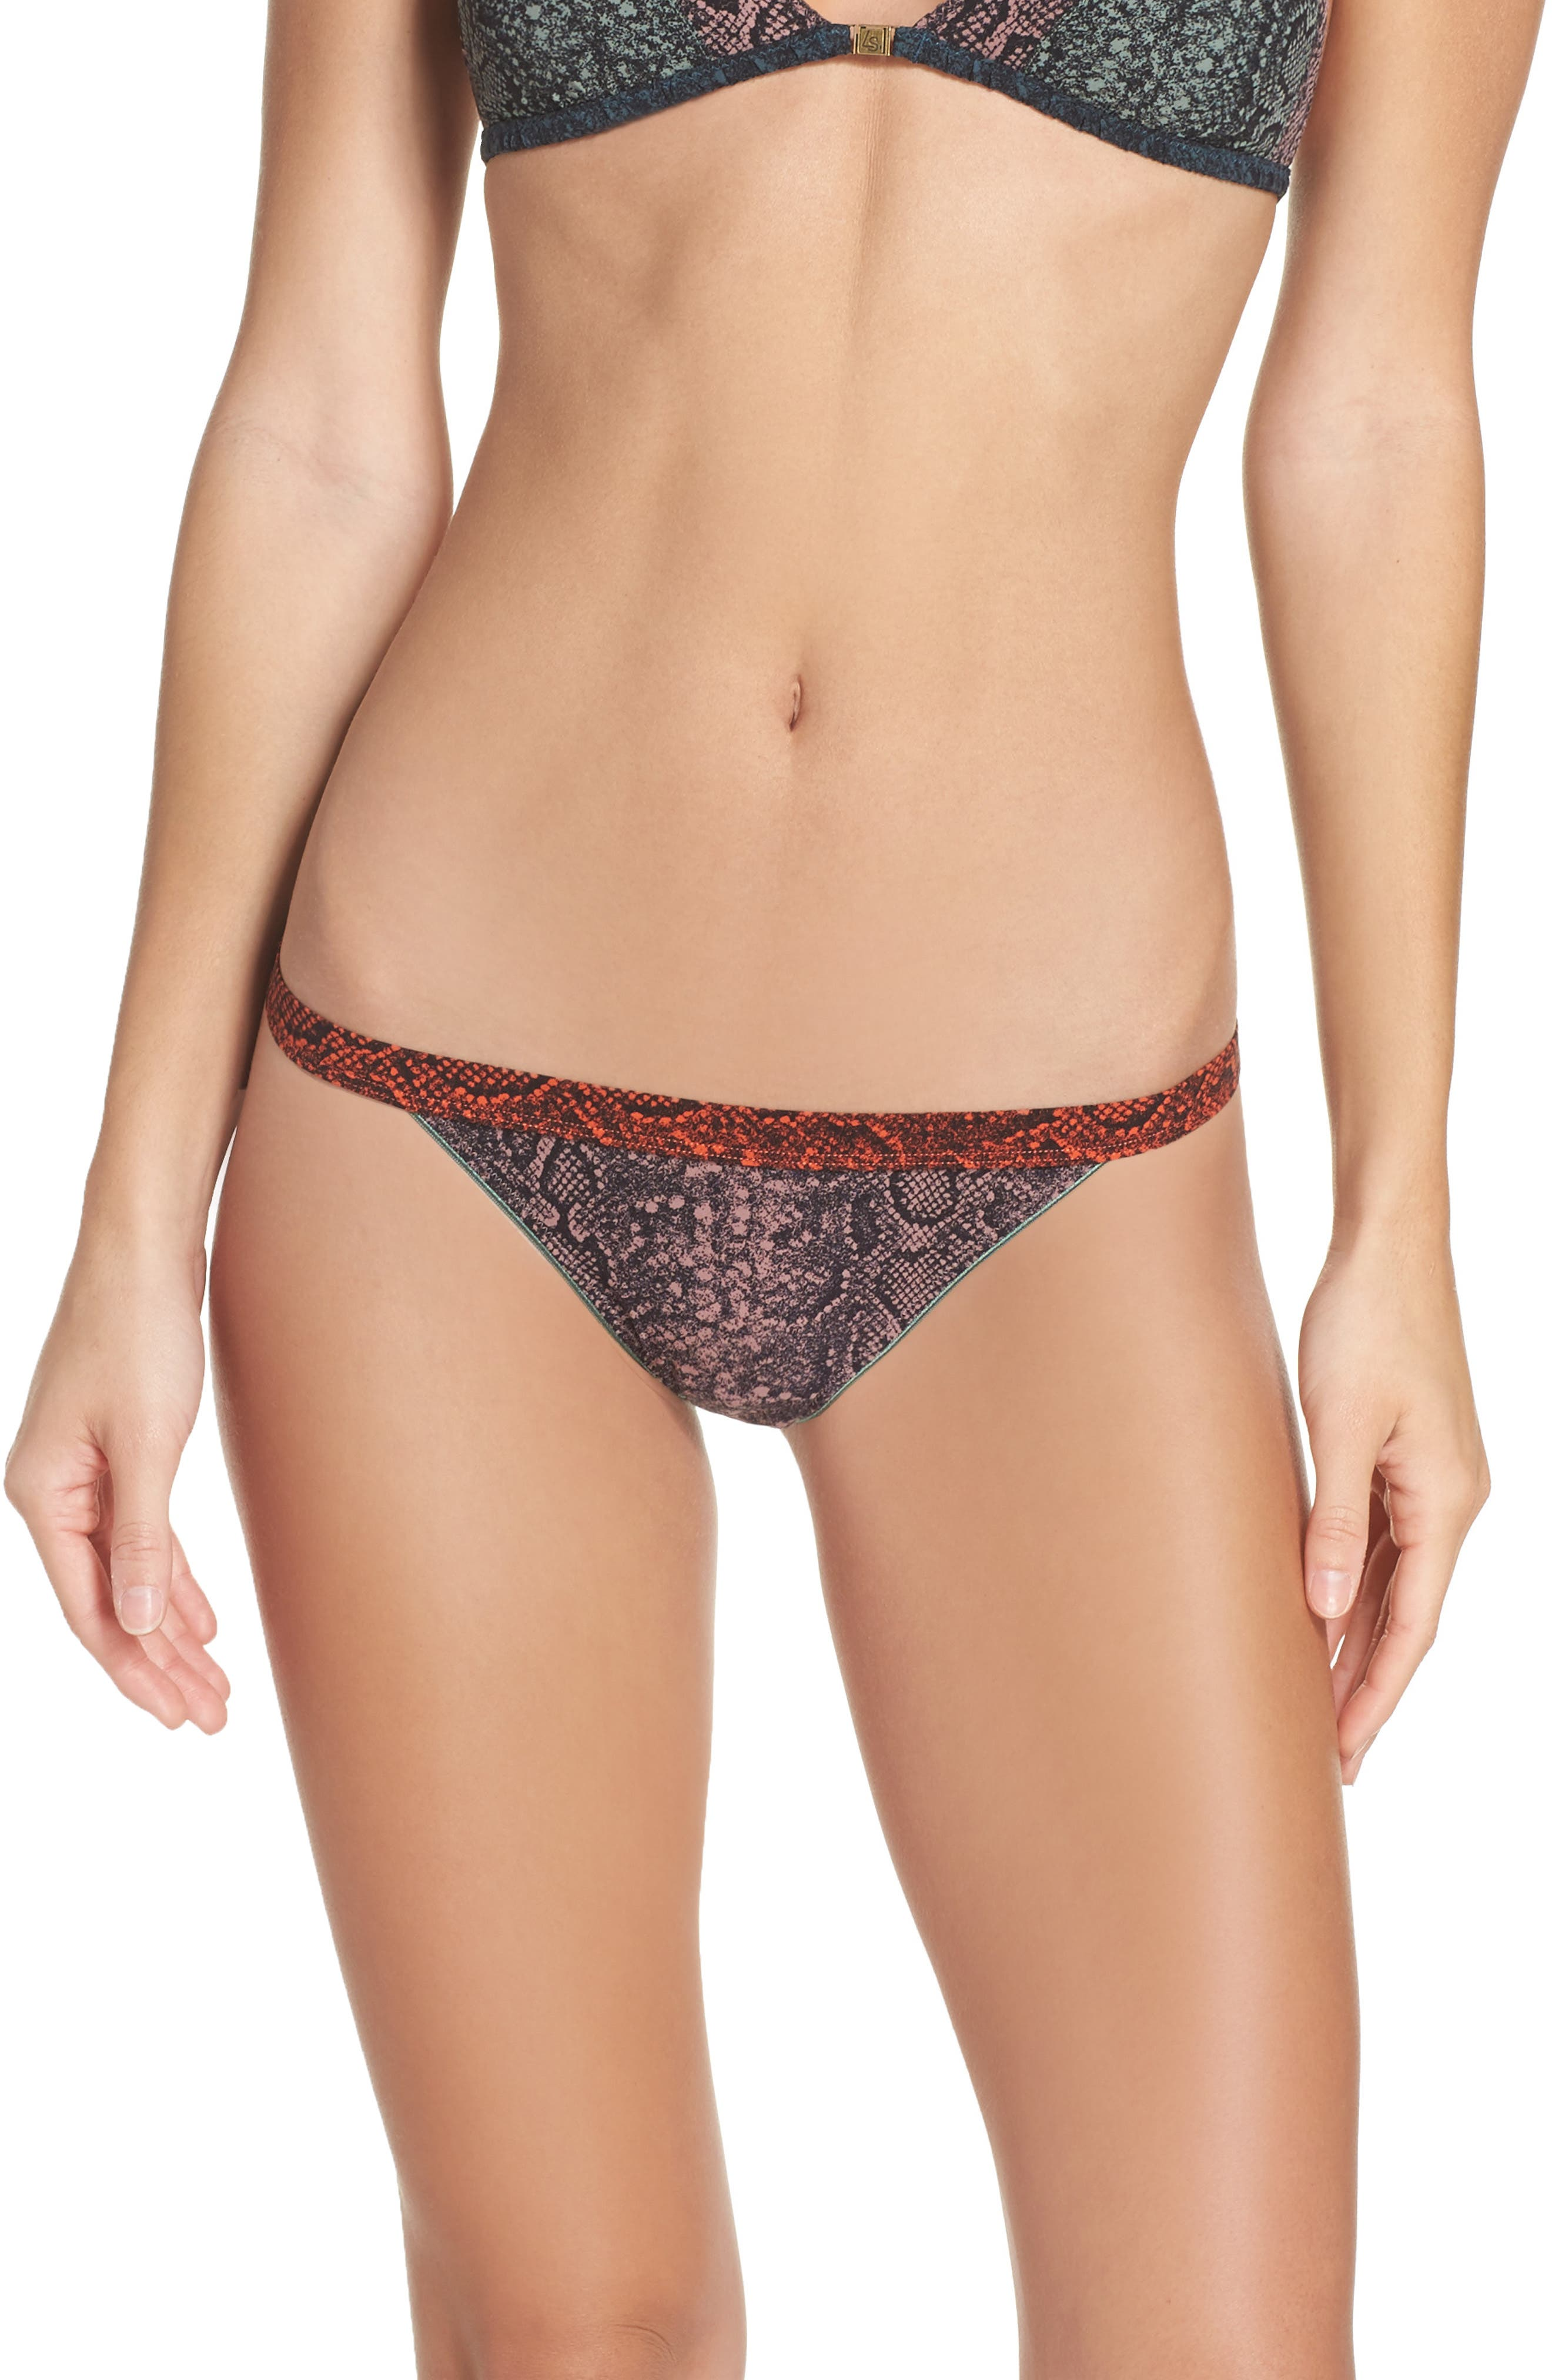 Wild Rose Lace Bikini,                             Main thumbnail 1, color,                             Snake Grape Shake